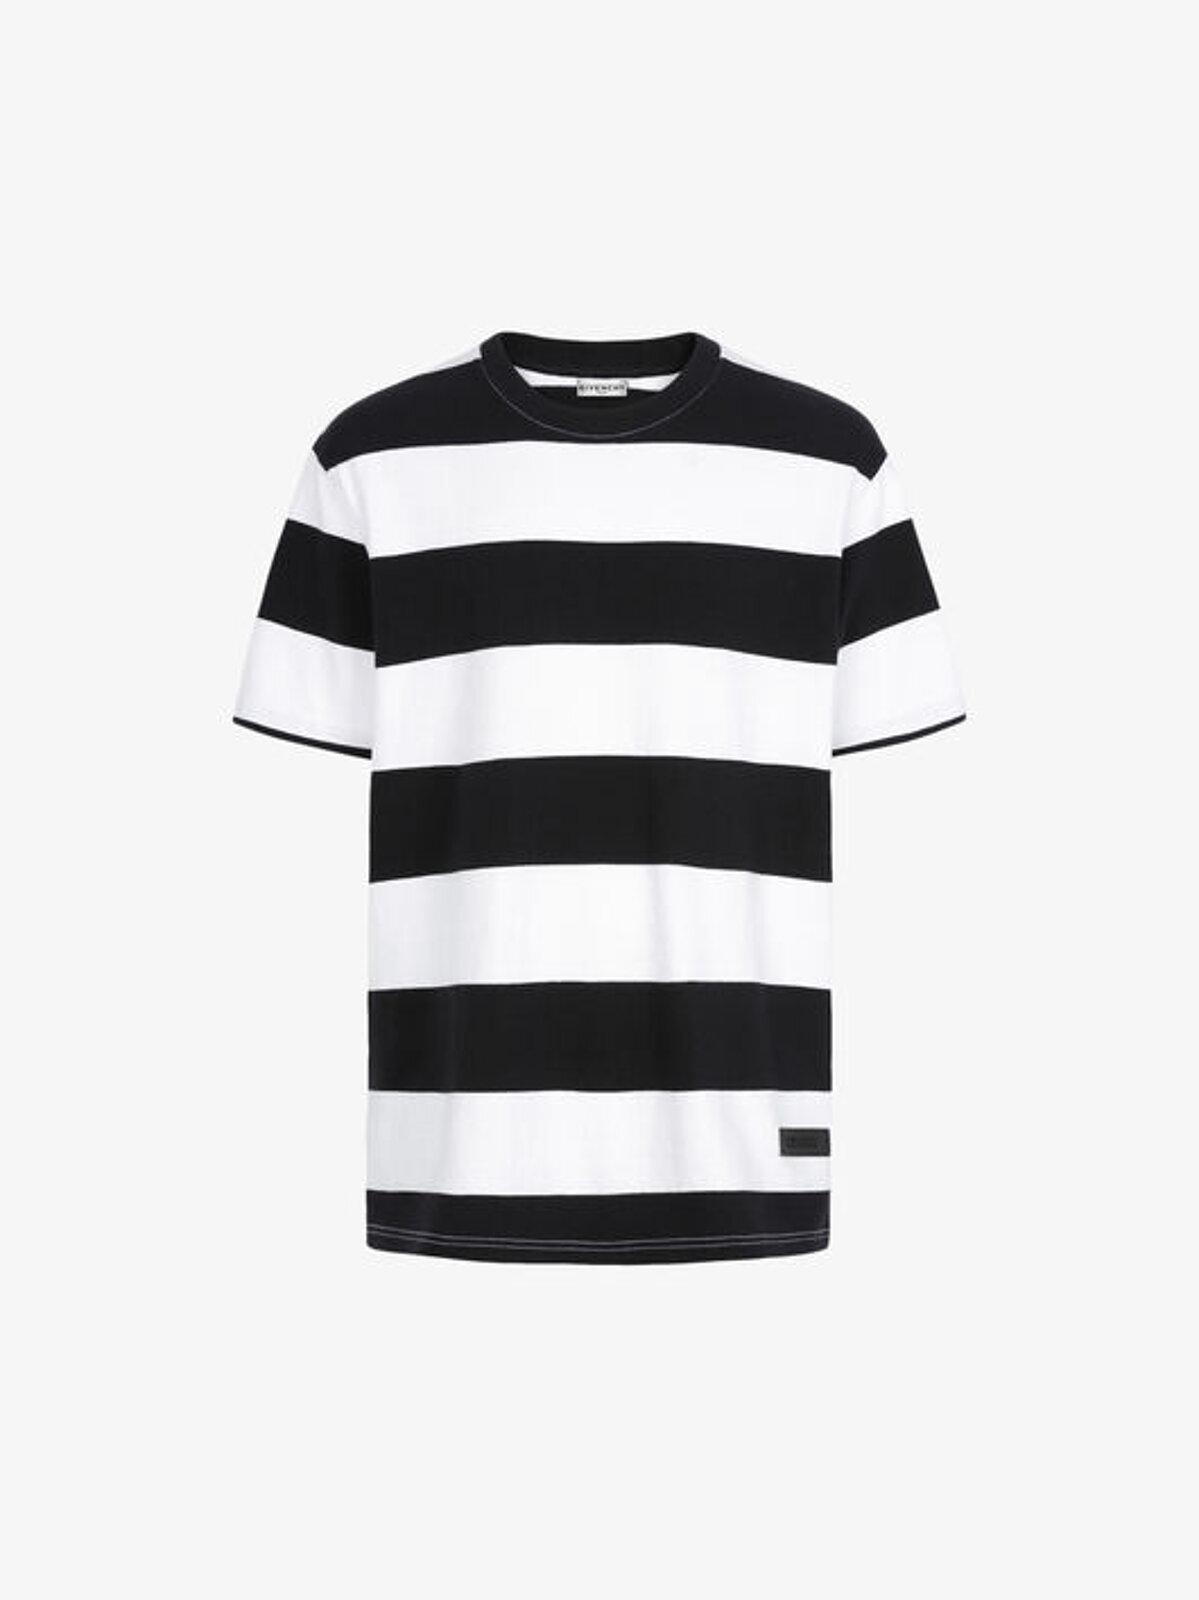 T-Shirt A Righe Givenchy - Givenchy